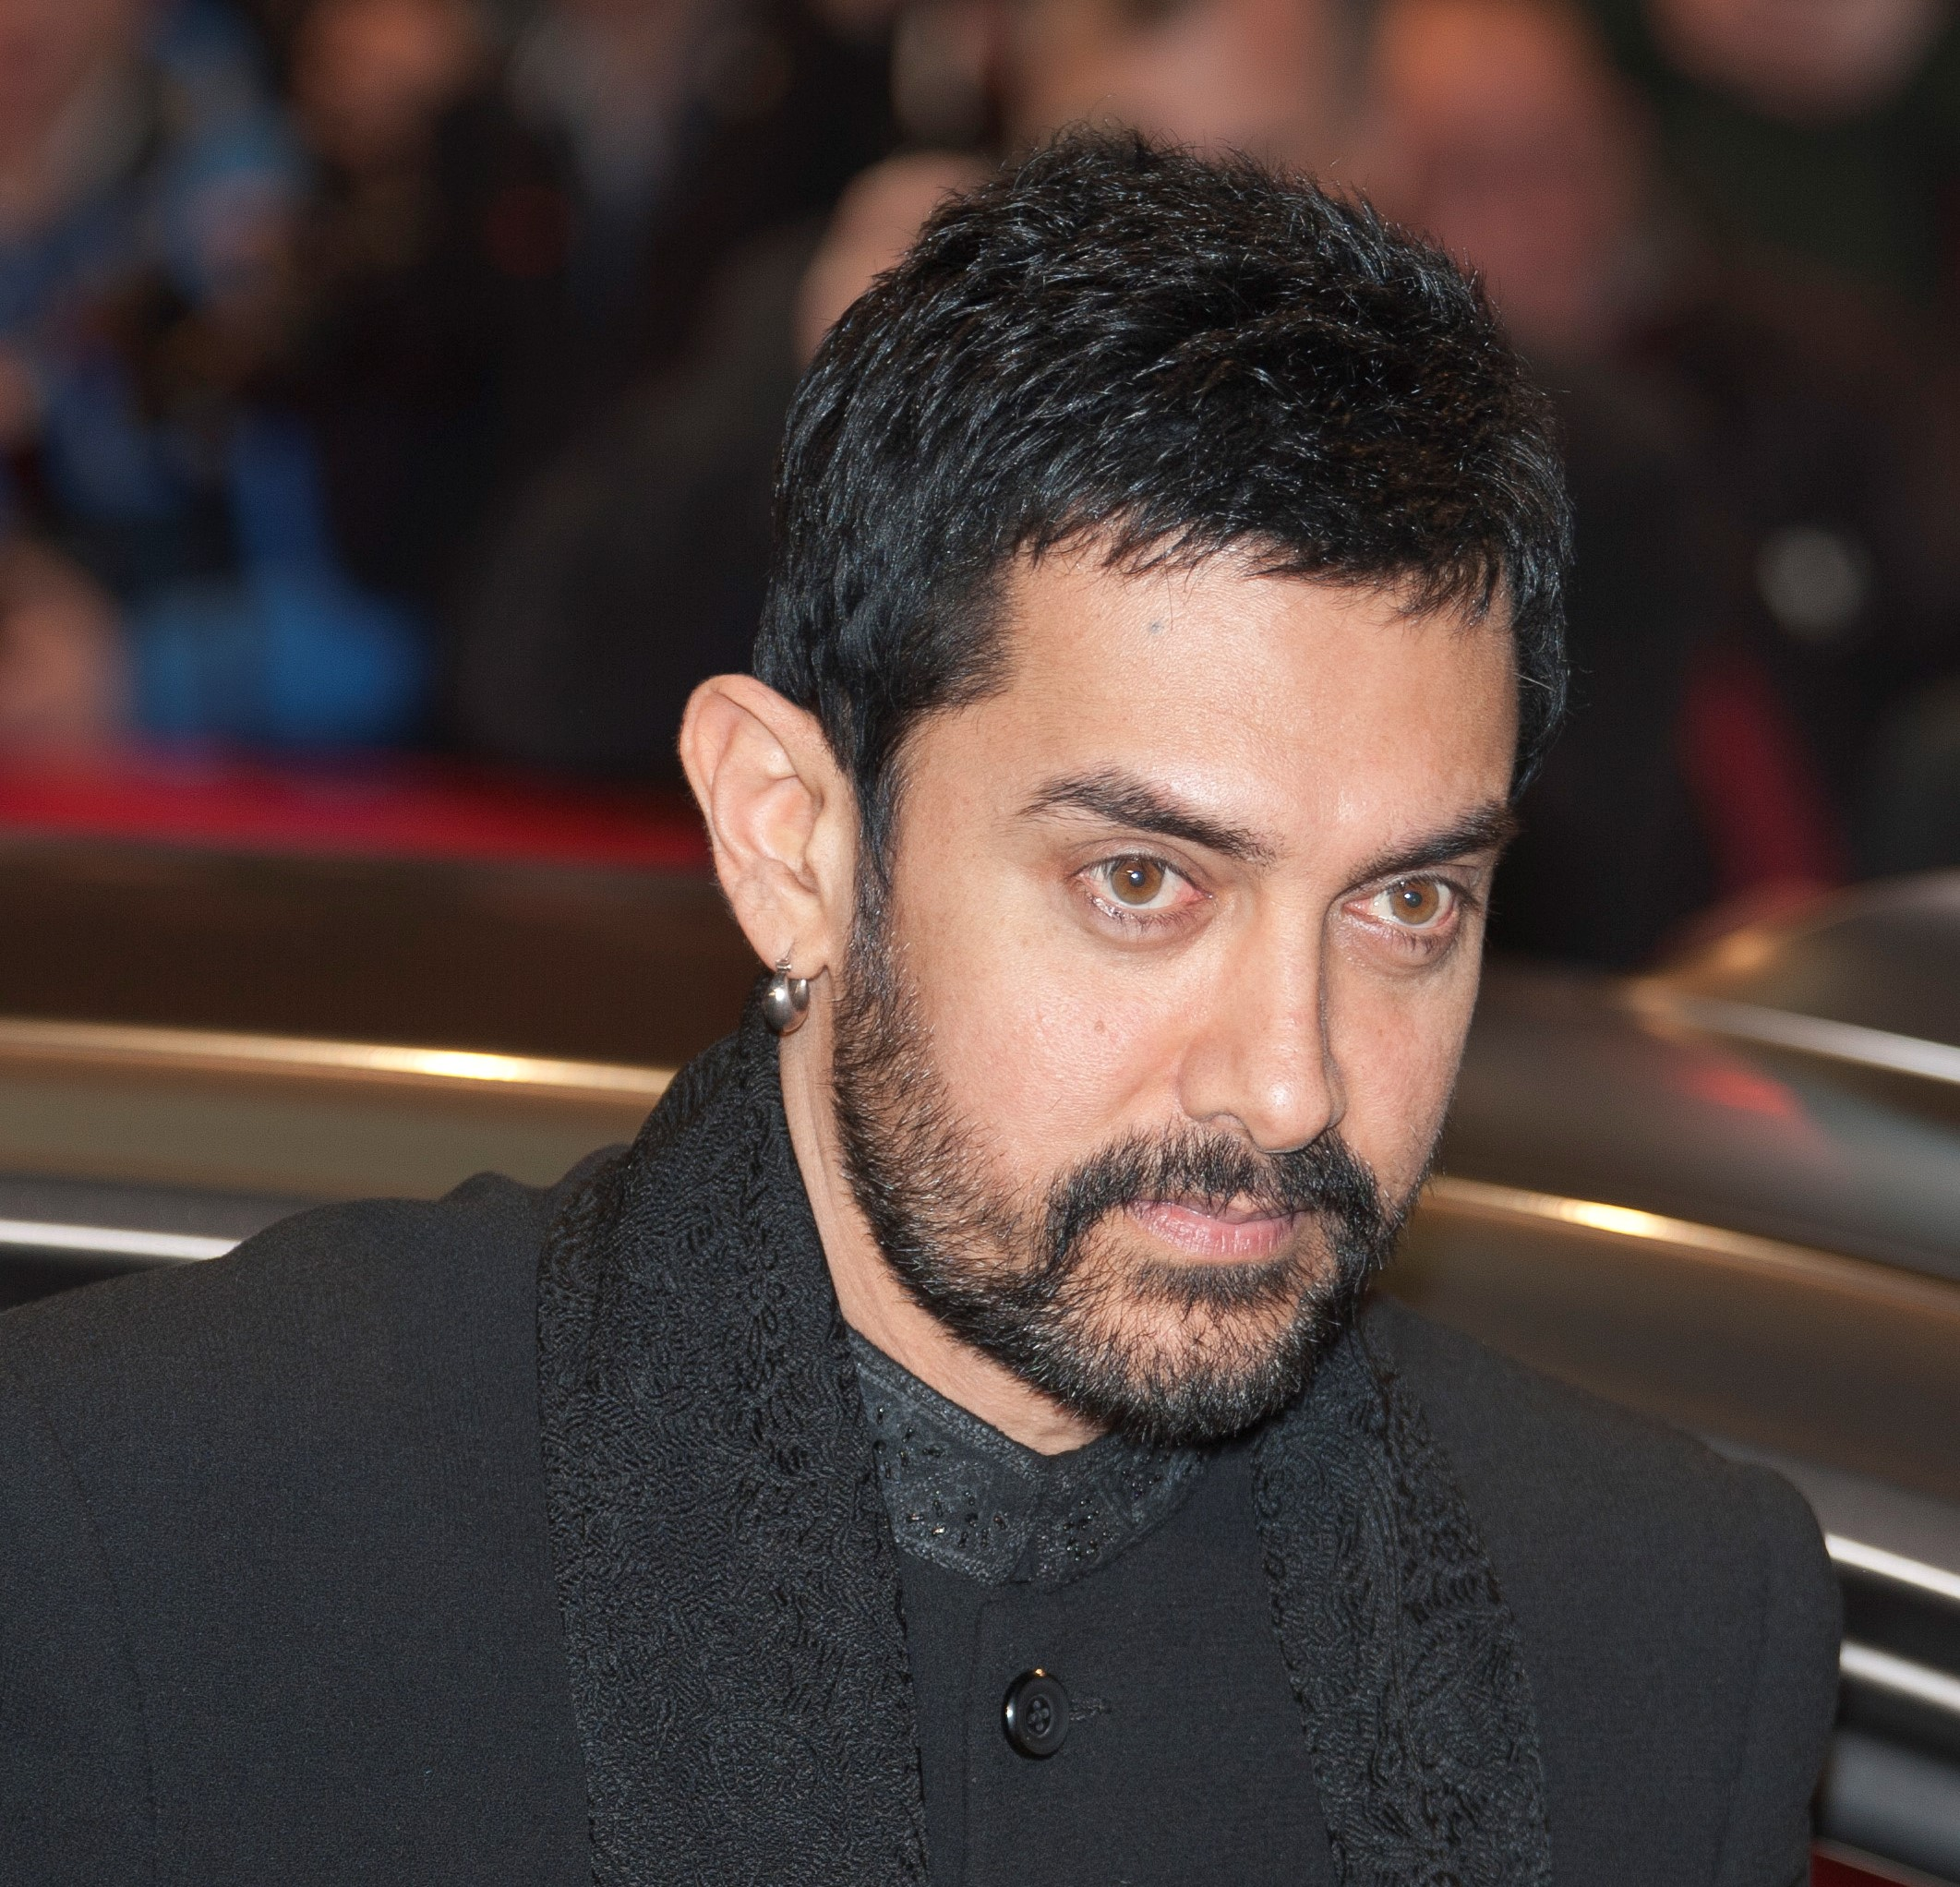 Aamir Khan Biography – Early Life, Movies, Awards, Family & Net Worth